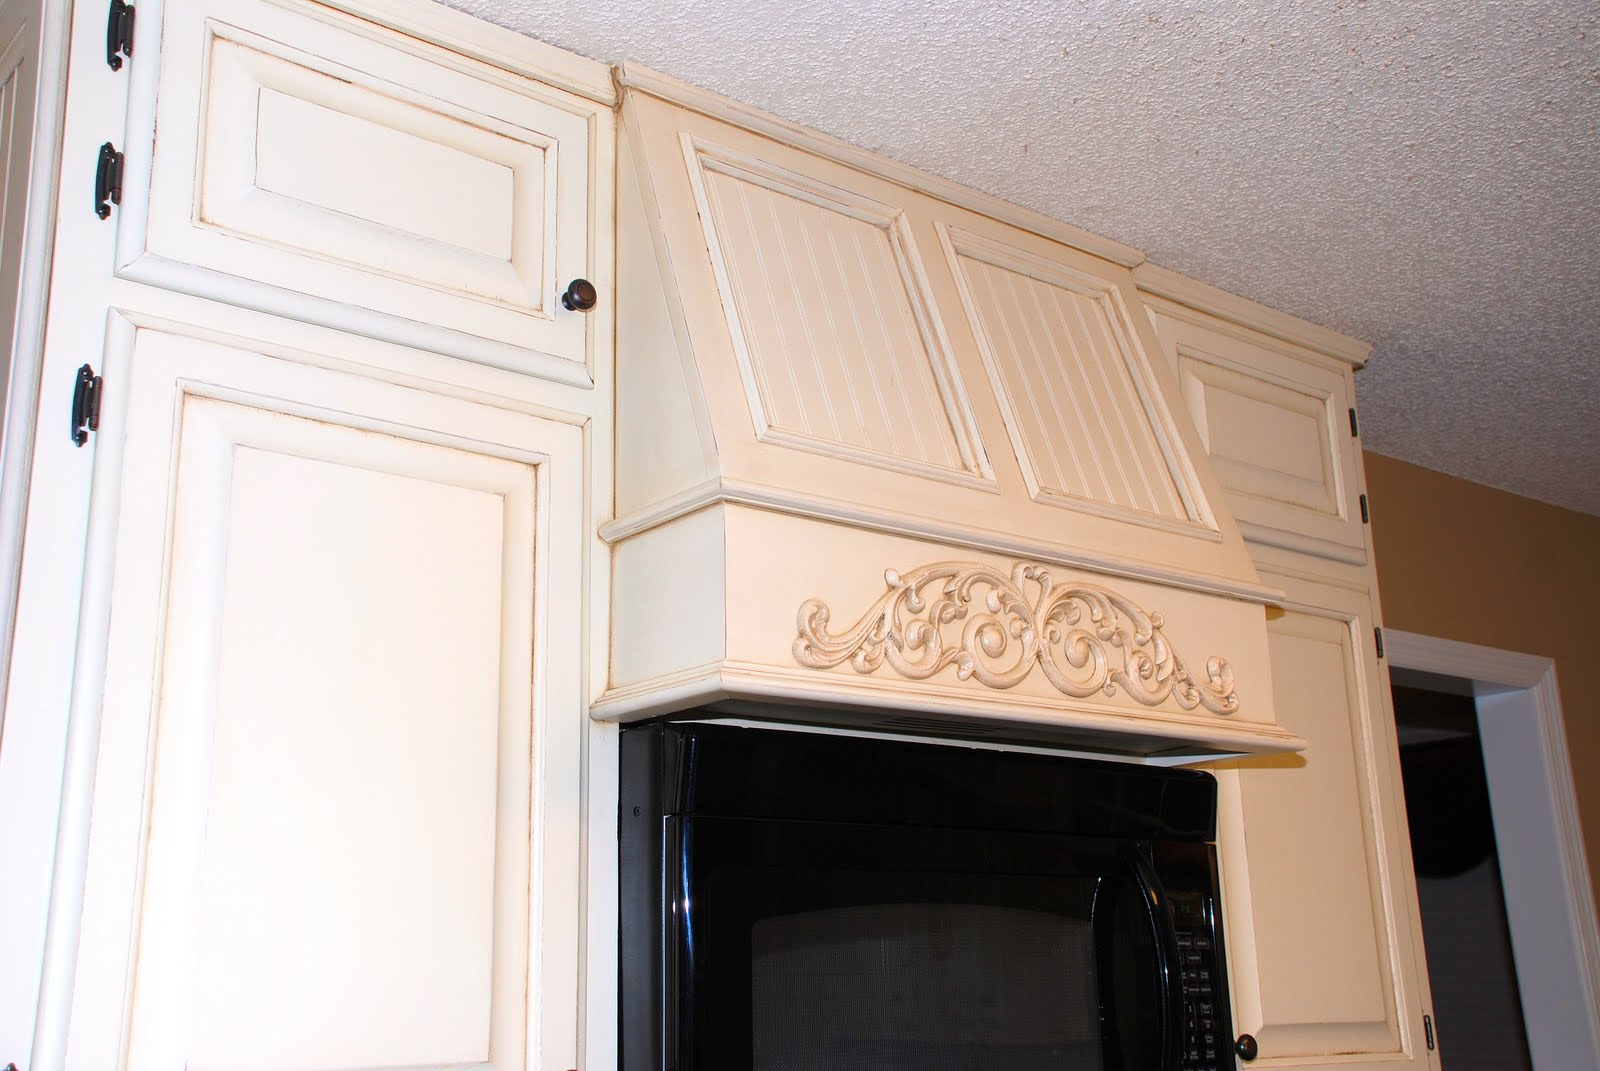 Laminate Kitchen Cabinets With Oak Trim Remodelaholic From Oak Kitchen Cabinets To Painted White